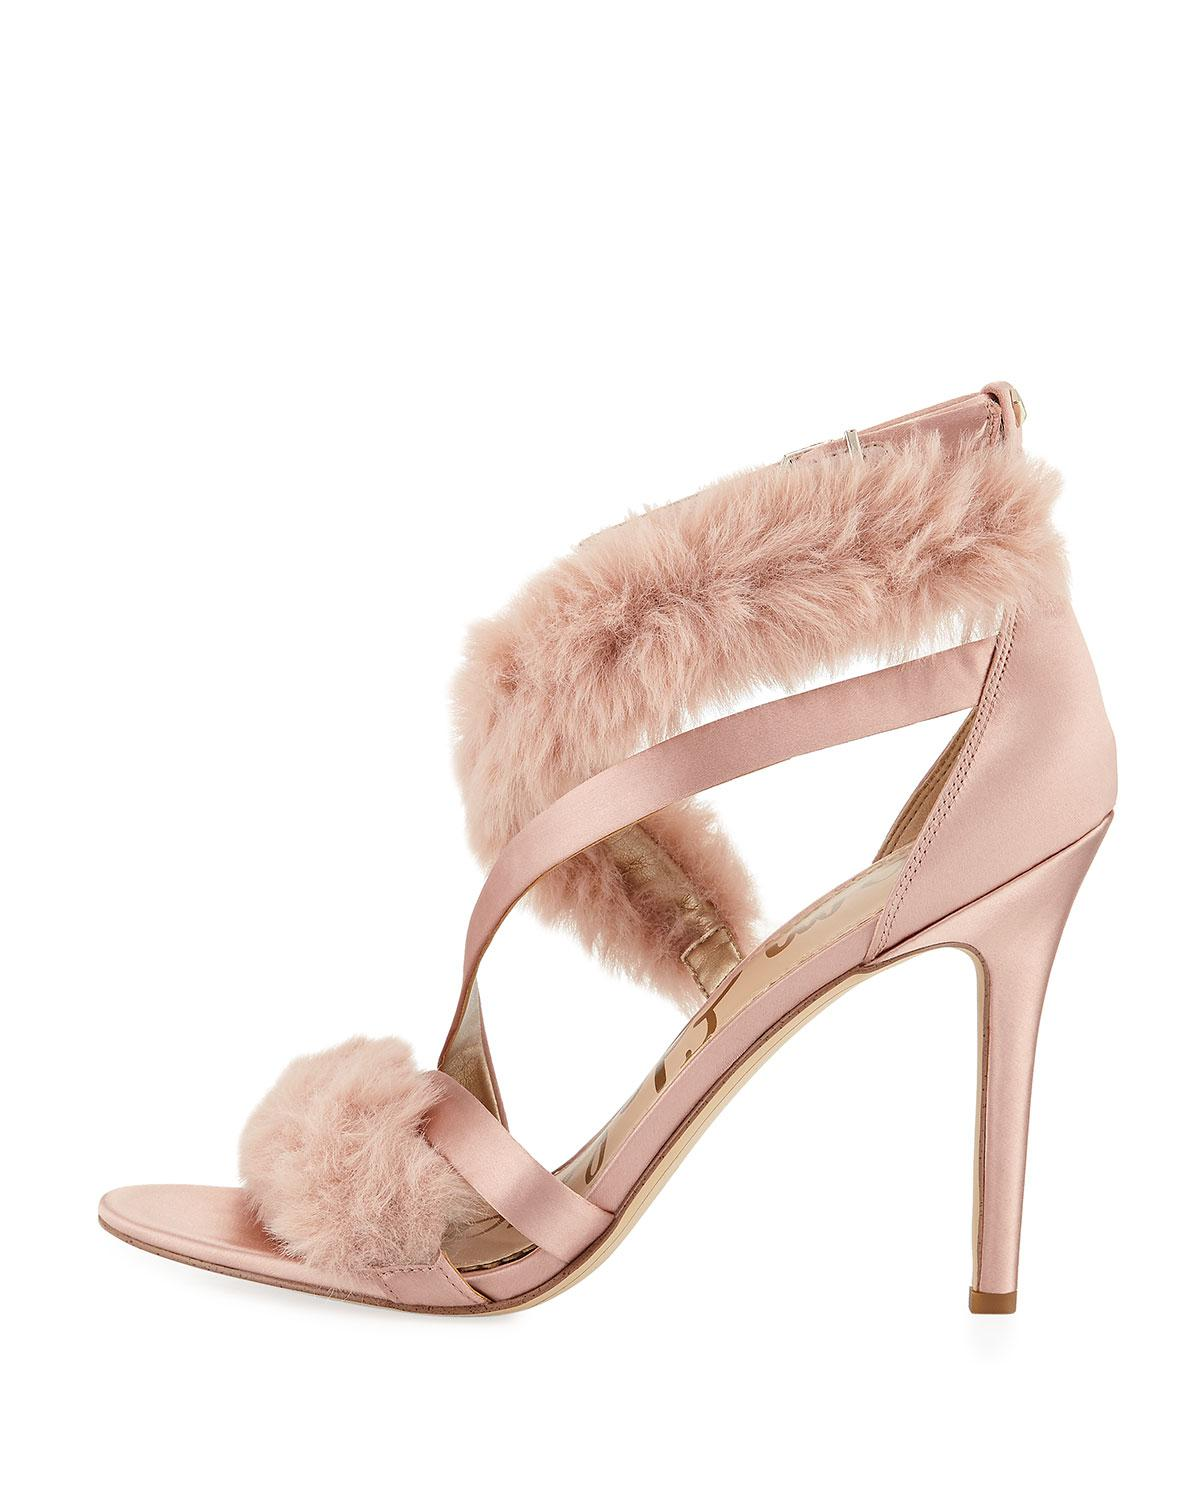 3f06be63b72 Lyst - Sam Edelman Adelle Satin And Faux Fur Pumps in Pink - Save 66%